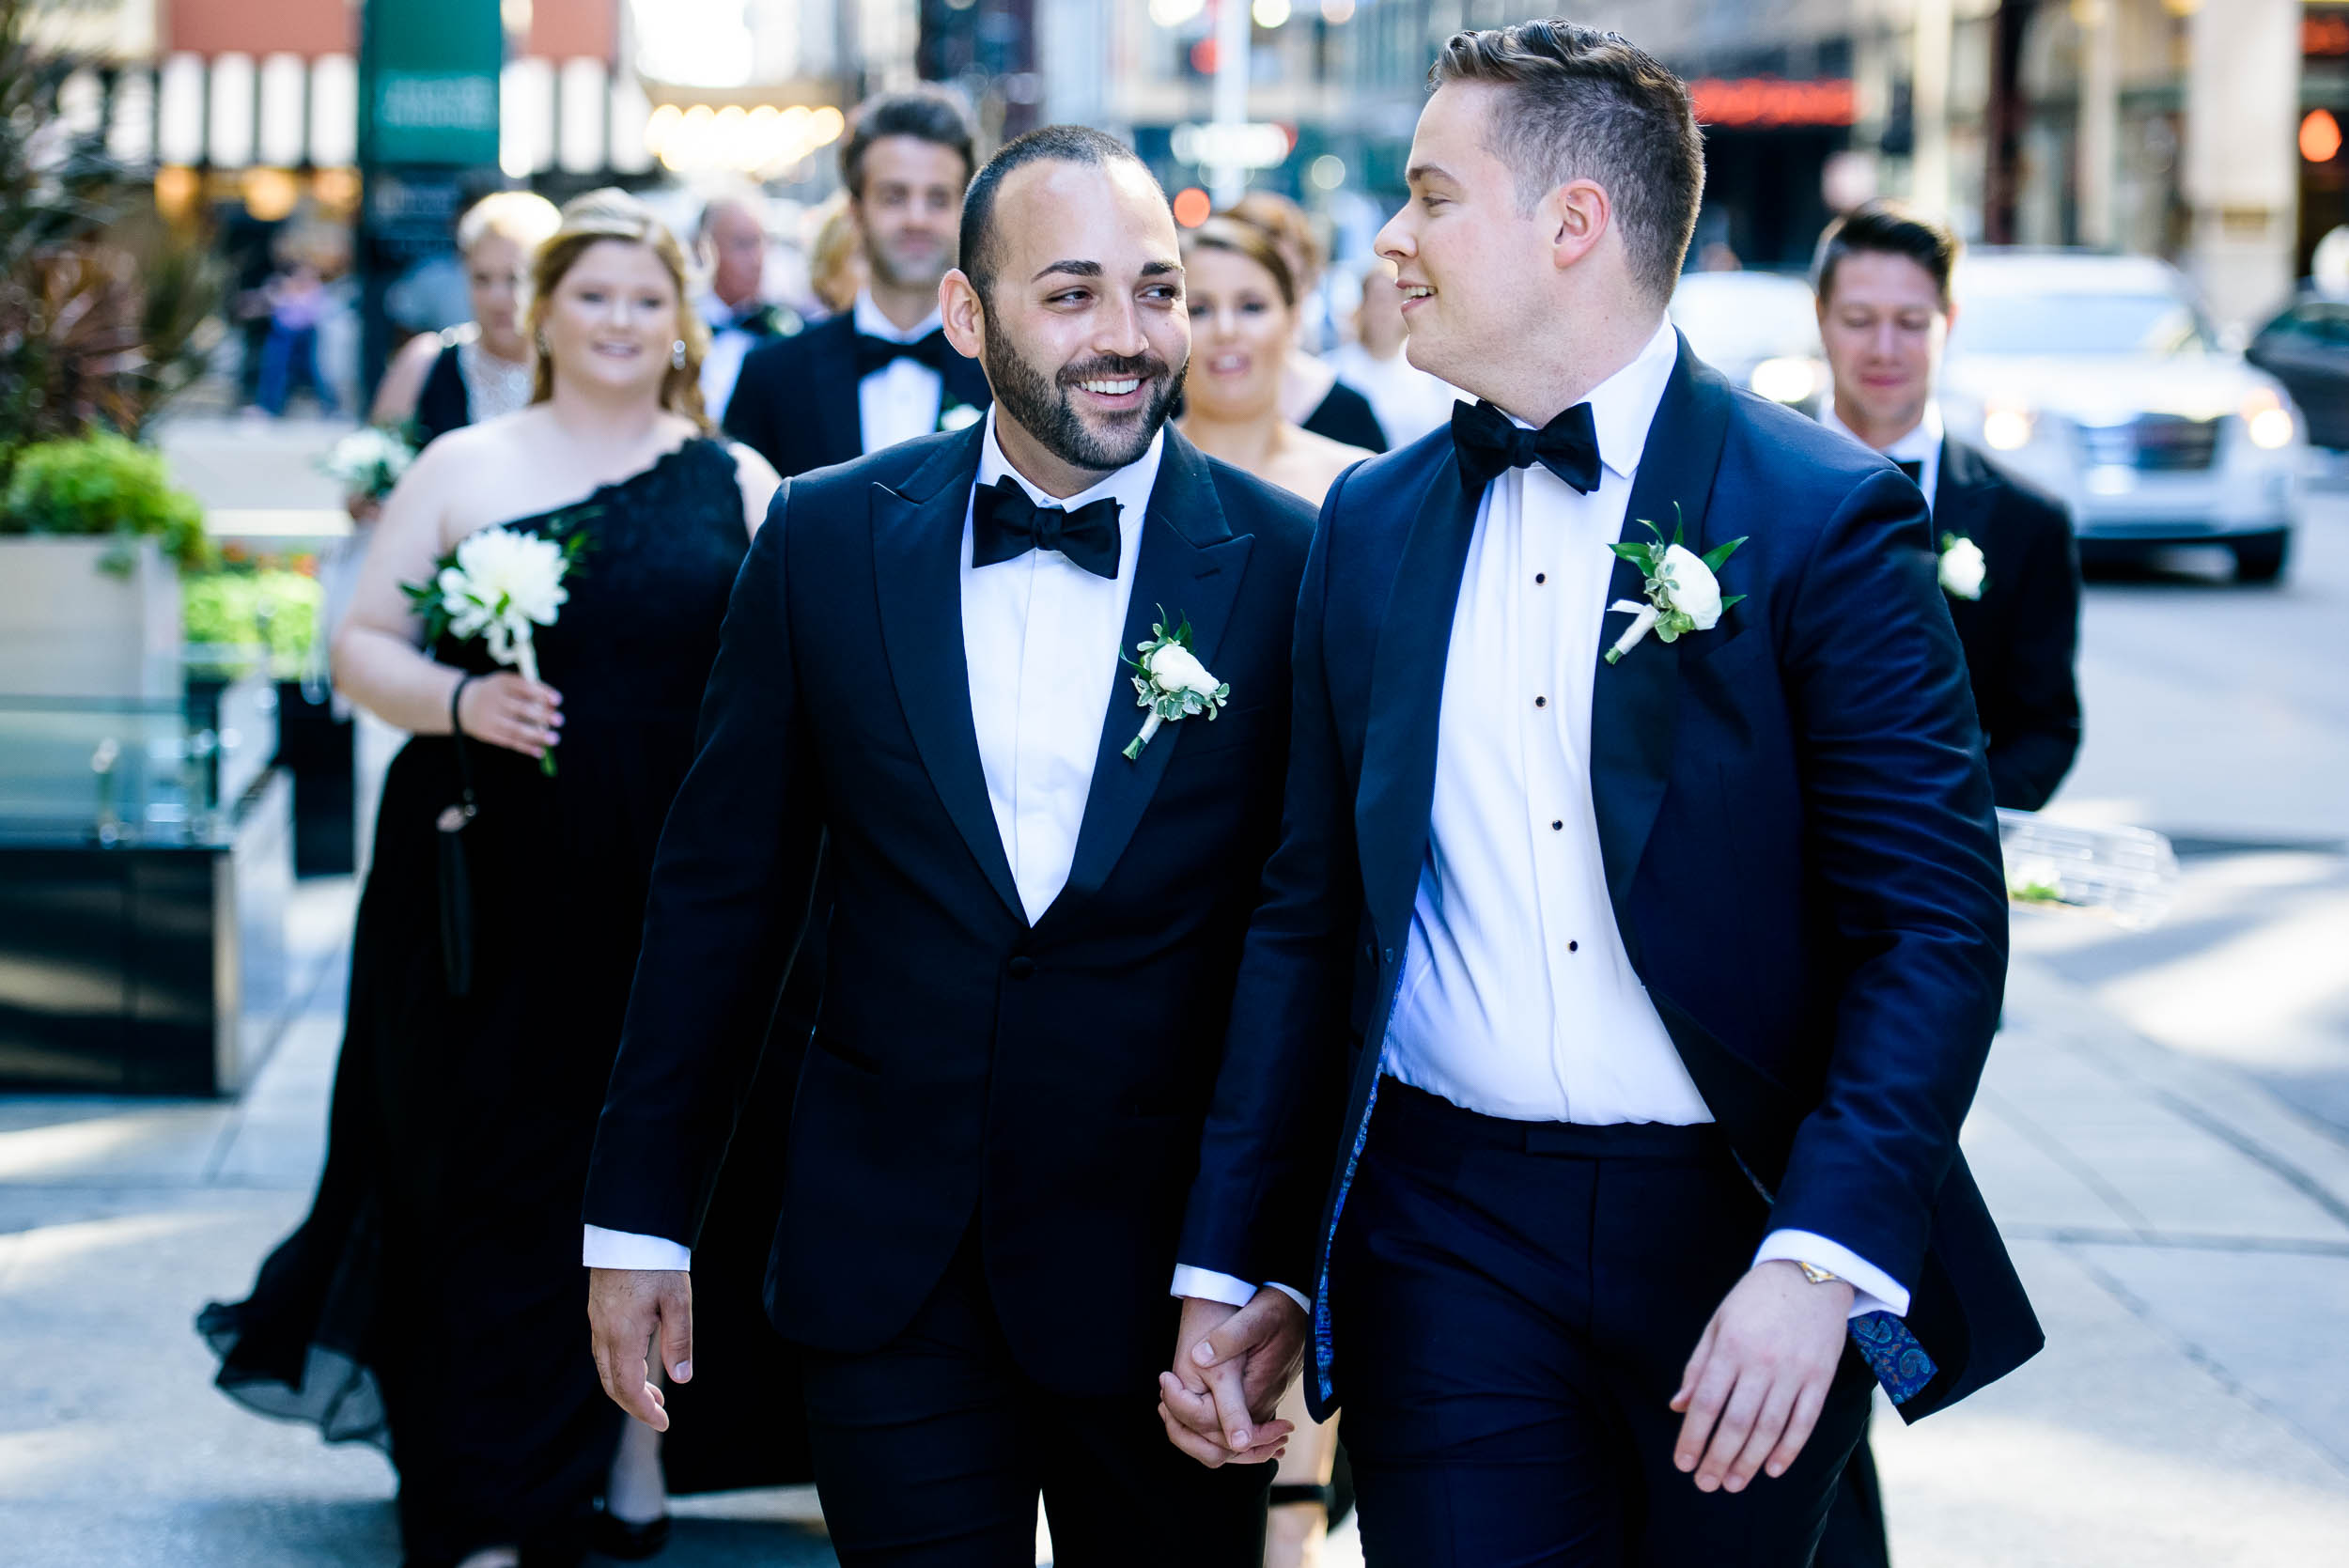 Wedding party photos for luxurious same-sex, fall wedding at the Chicago Symphony Center captured by J. Brown Photography. See more wedding ideas at jbrownphotography.com!